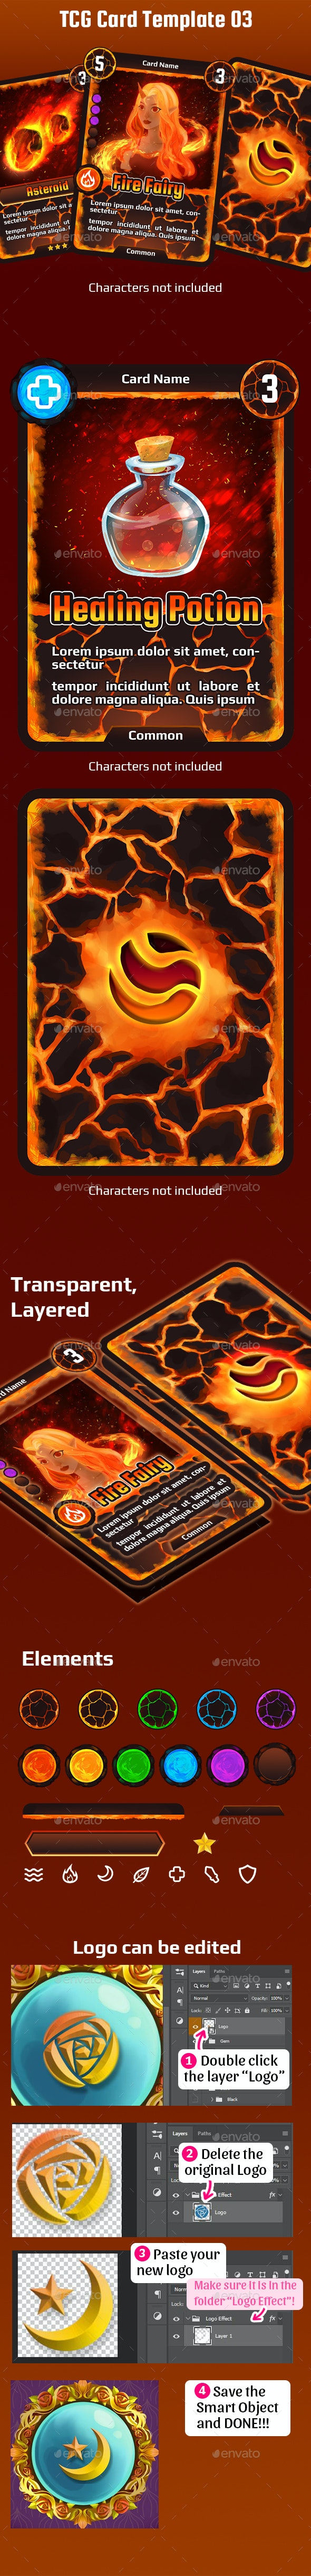 TCG Card Template 03 - Miscellaneous Game Assets